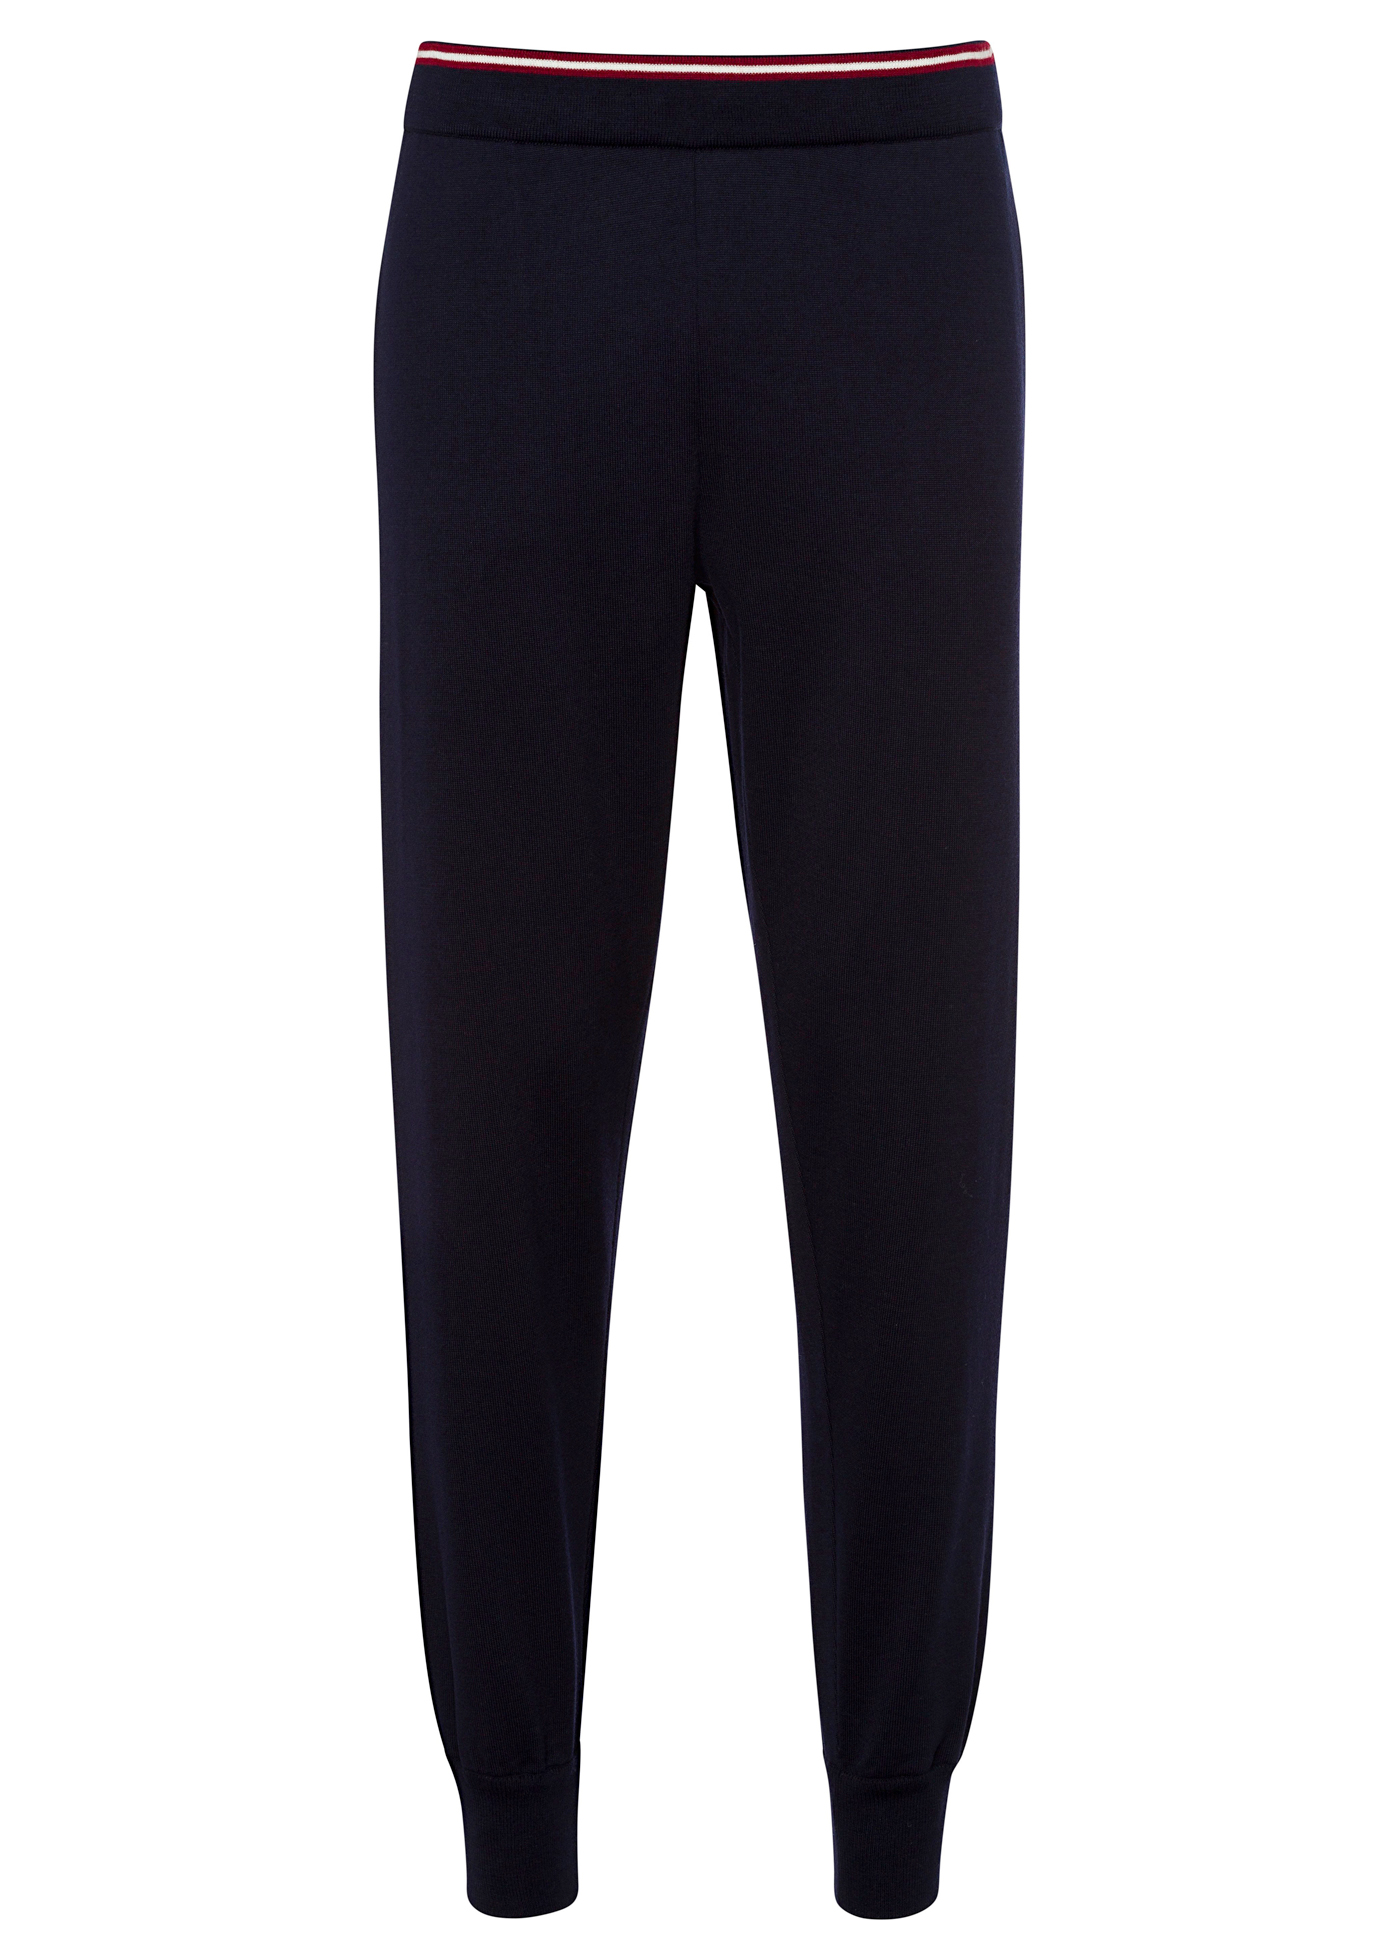 M4LR204K-8S010/750 TROUSERS image number 0